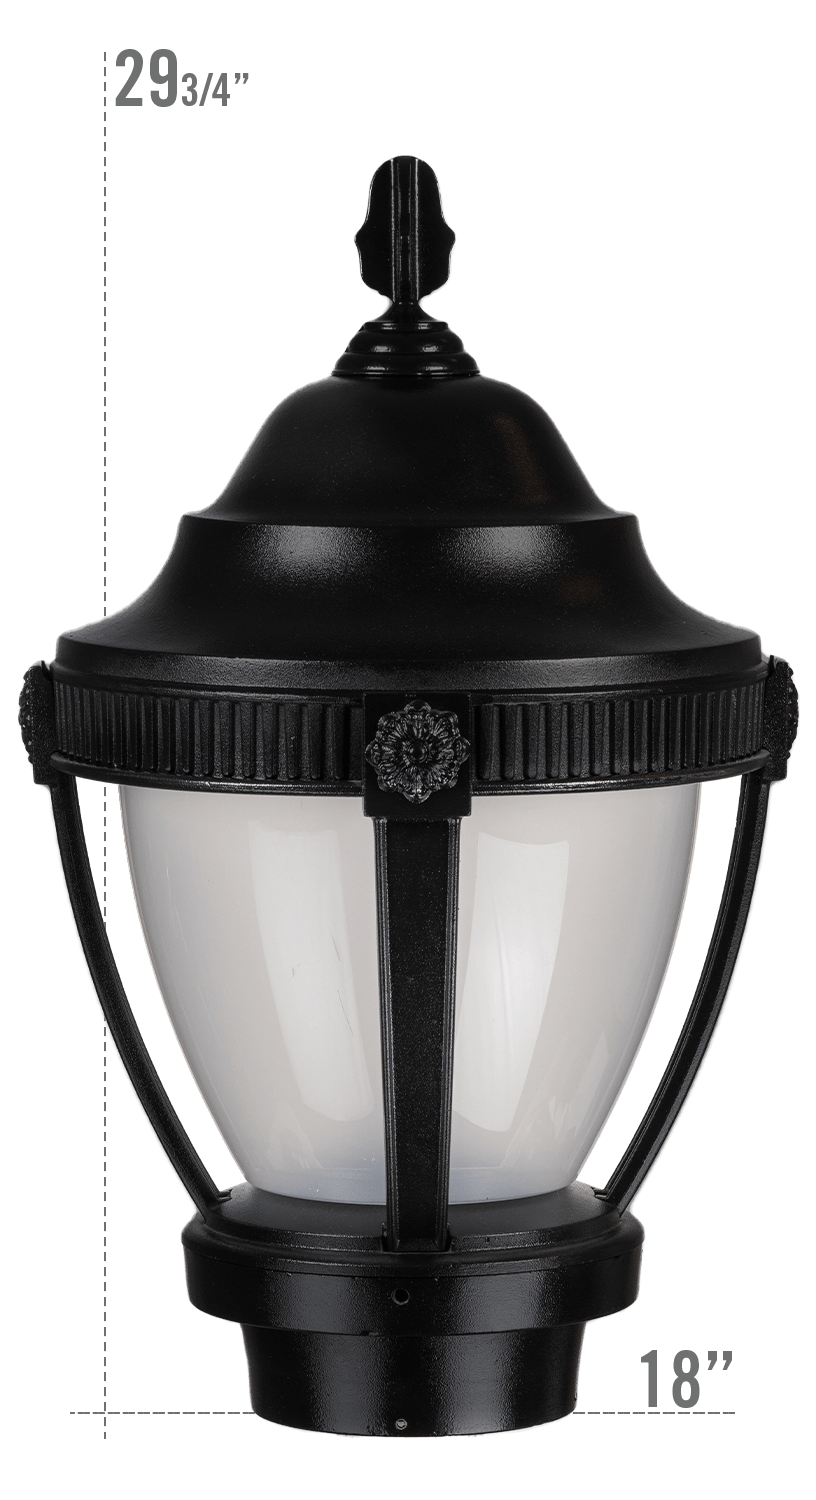 AUGUSTA LED LUMINAIRE WITH VILLANOVA LARGE FITTER FROSTED GLOBE